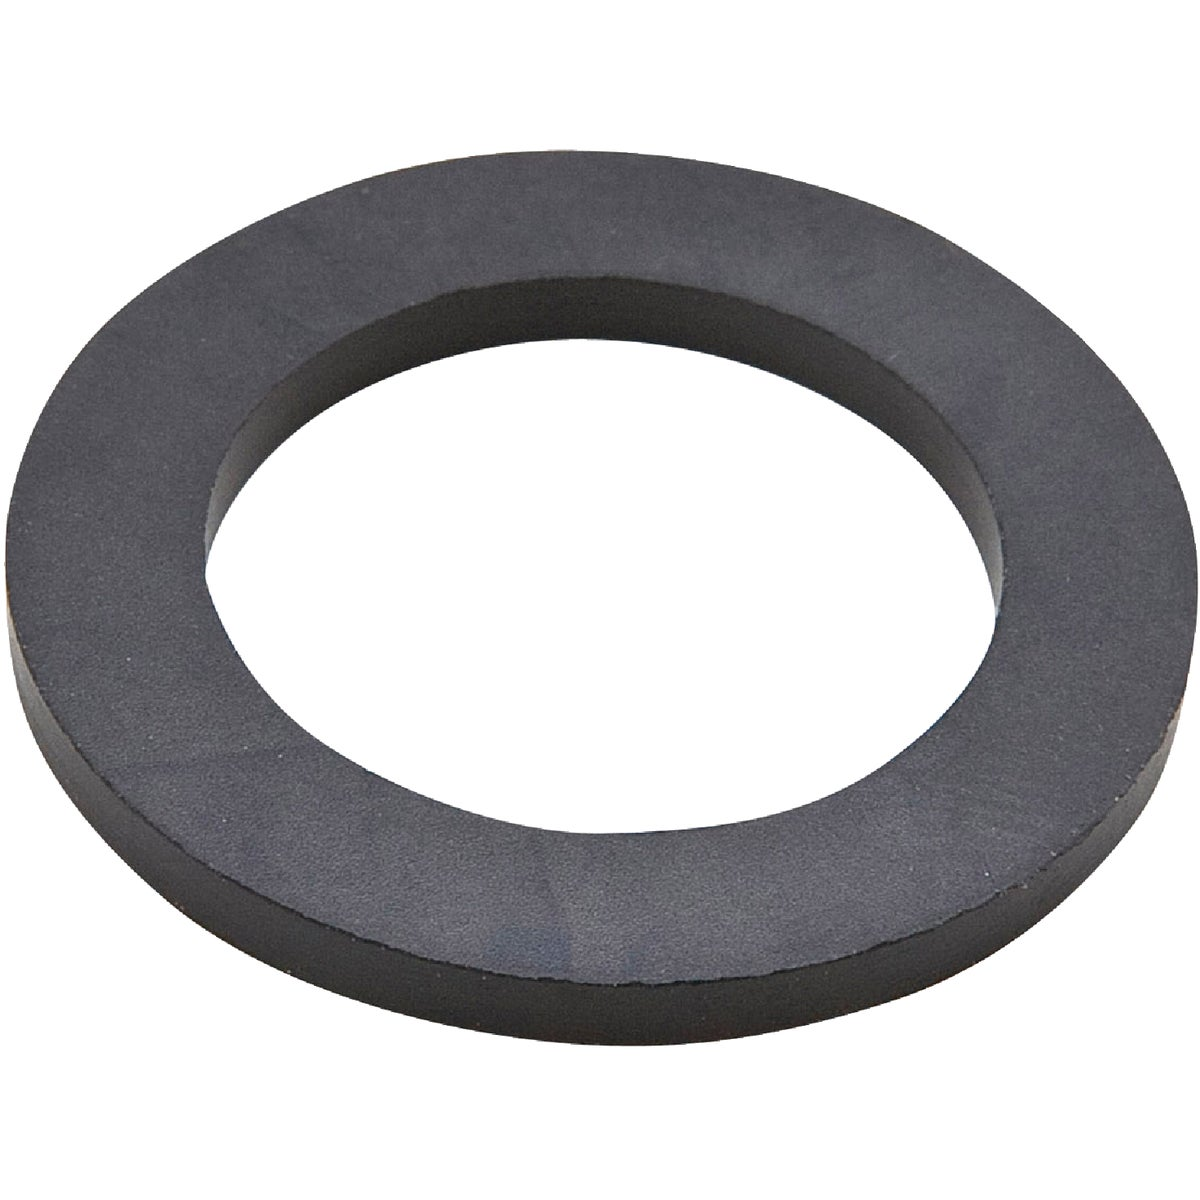 "3/4"" UNION WASHER - 888-240 by Mueller B K"